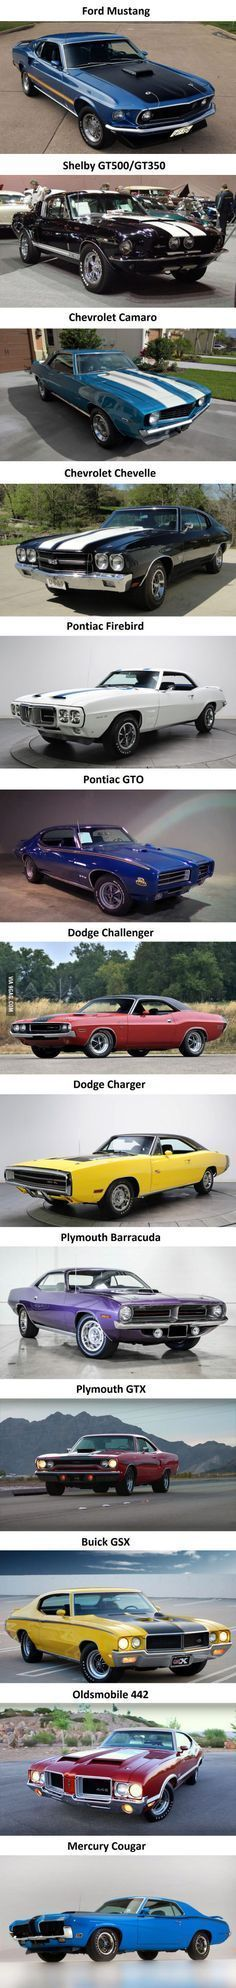 The Most Iconic Muscle Cars..Re-pin…Brought to you by #CarInsurance at #Houseo…